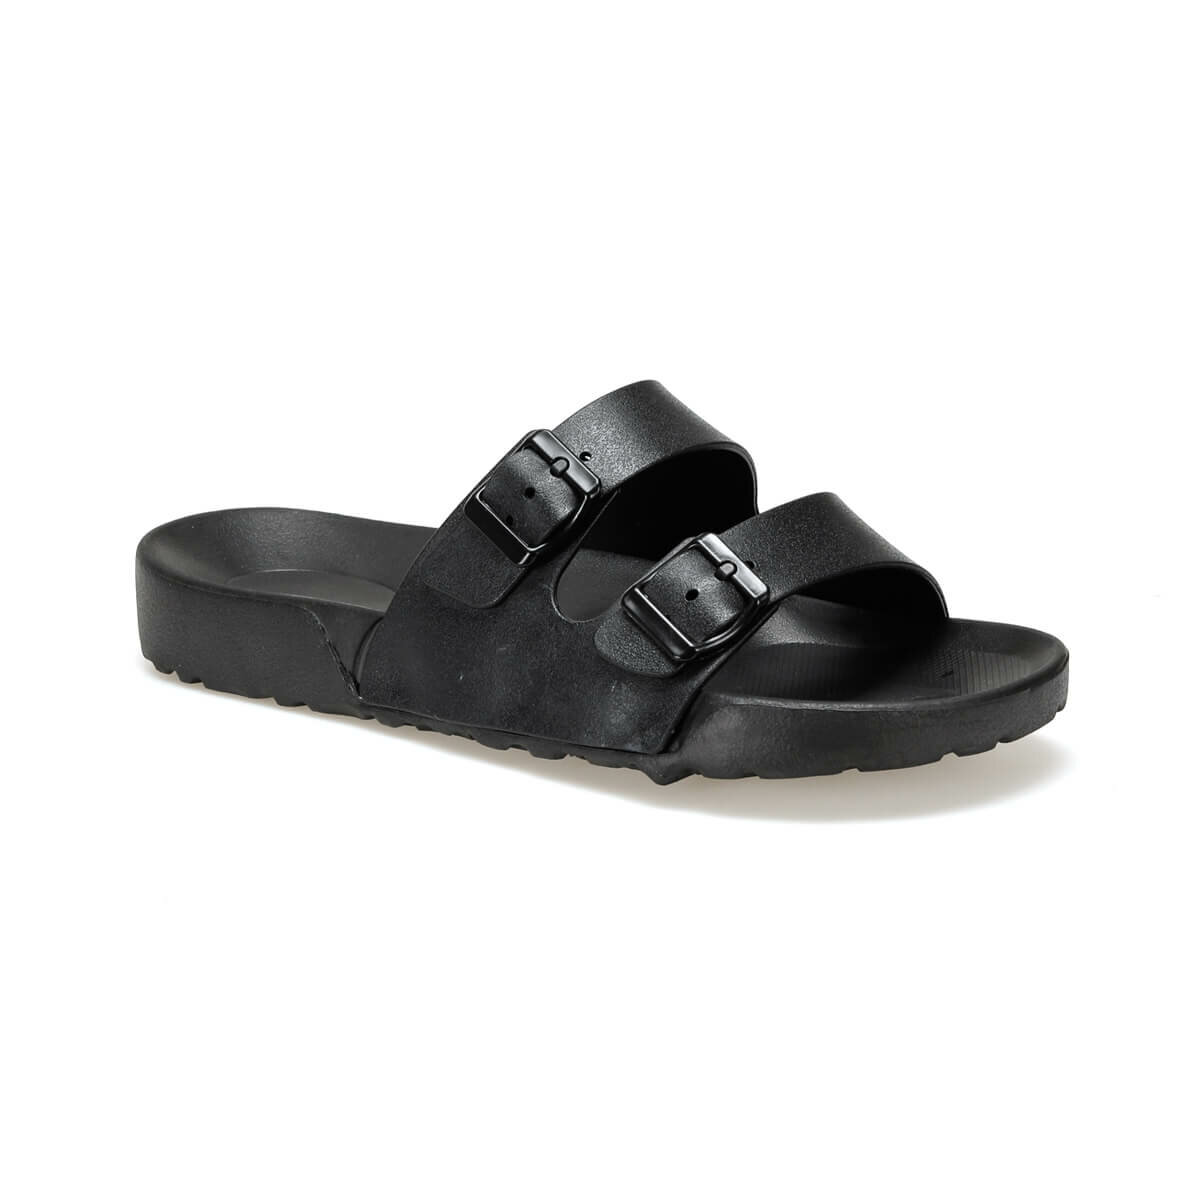 FLO SONTA Black Male Slippers KINETIX